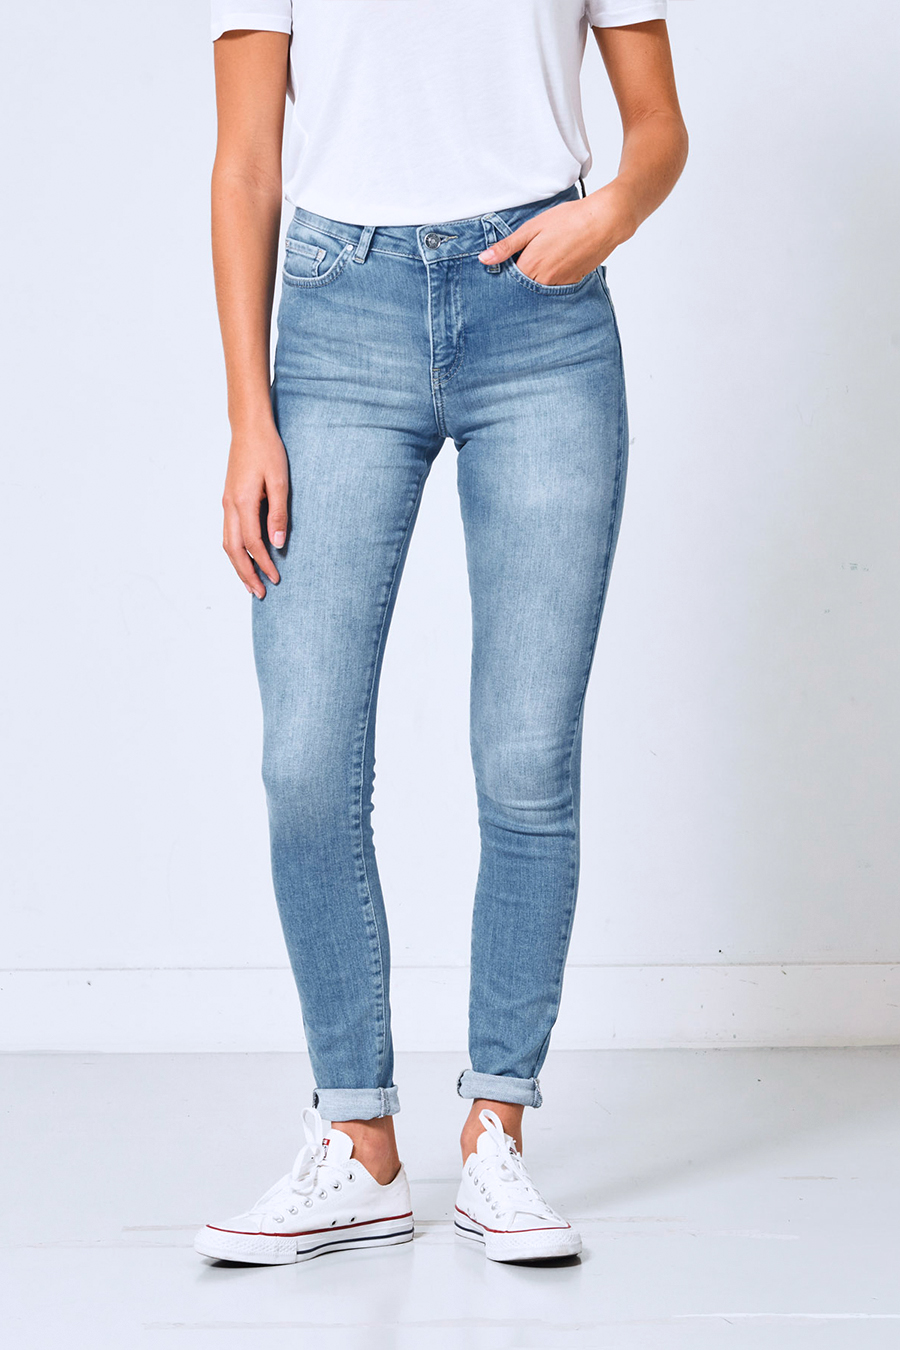 faith women Jeans